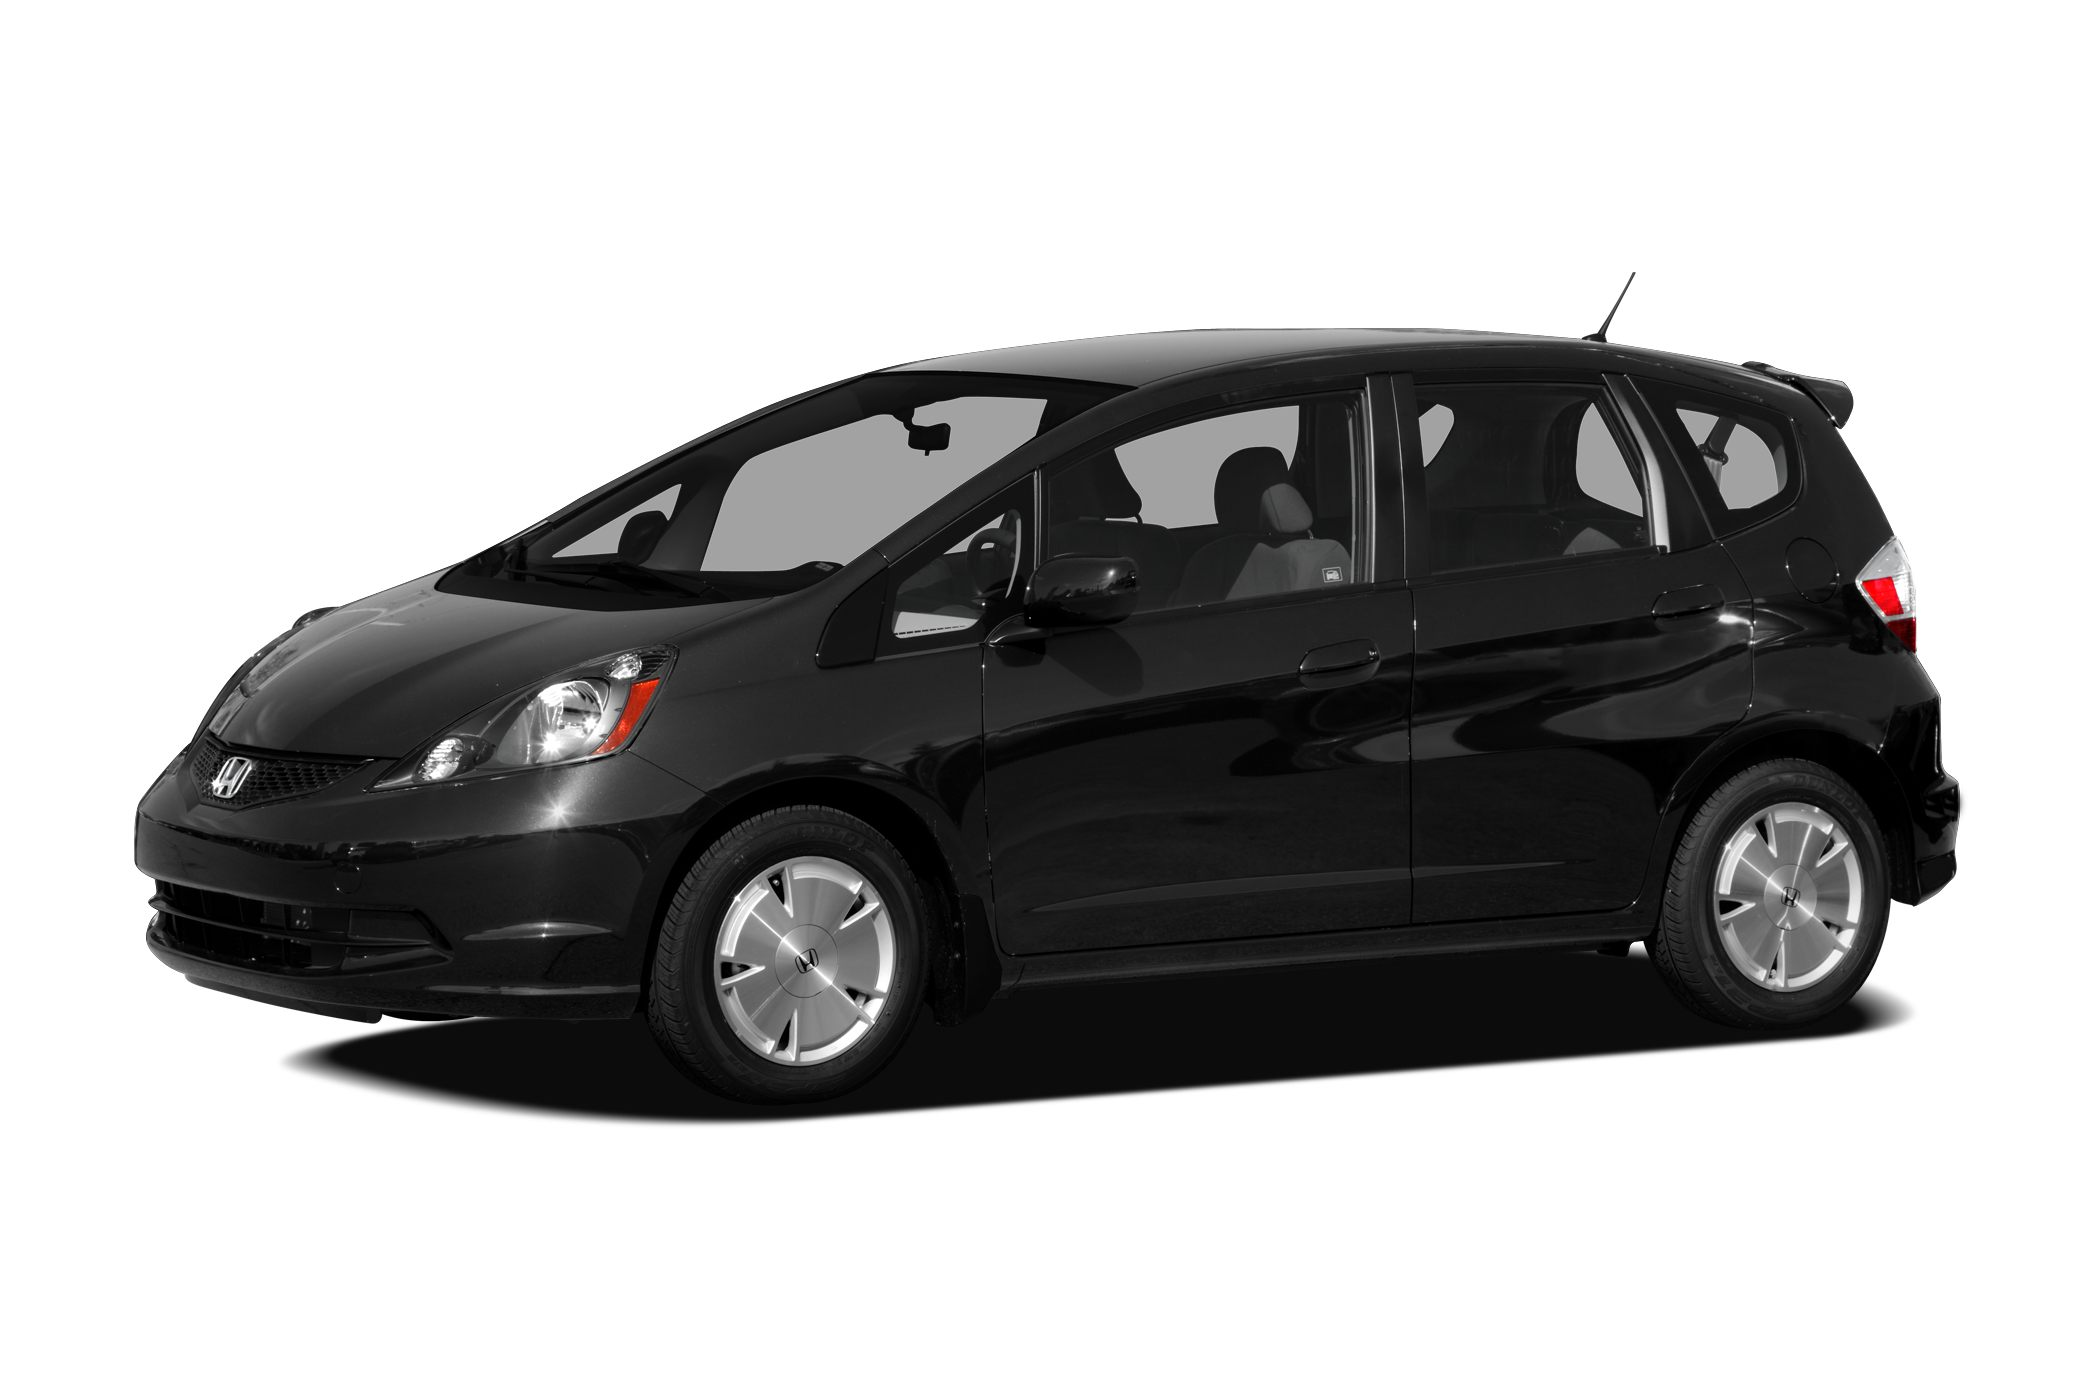 2010 Honda Fit Specs and Prices